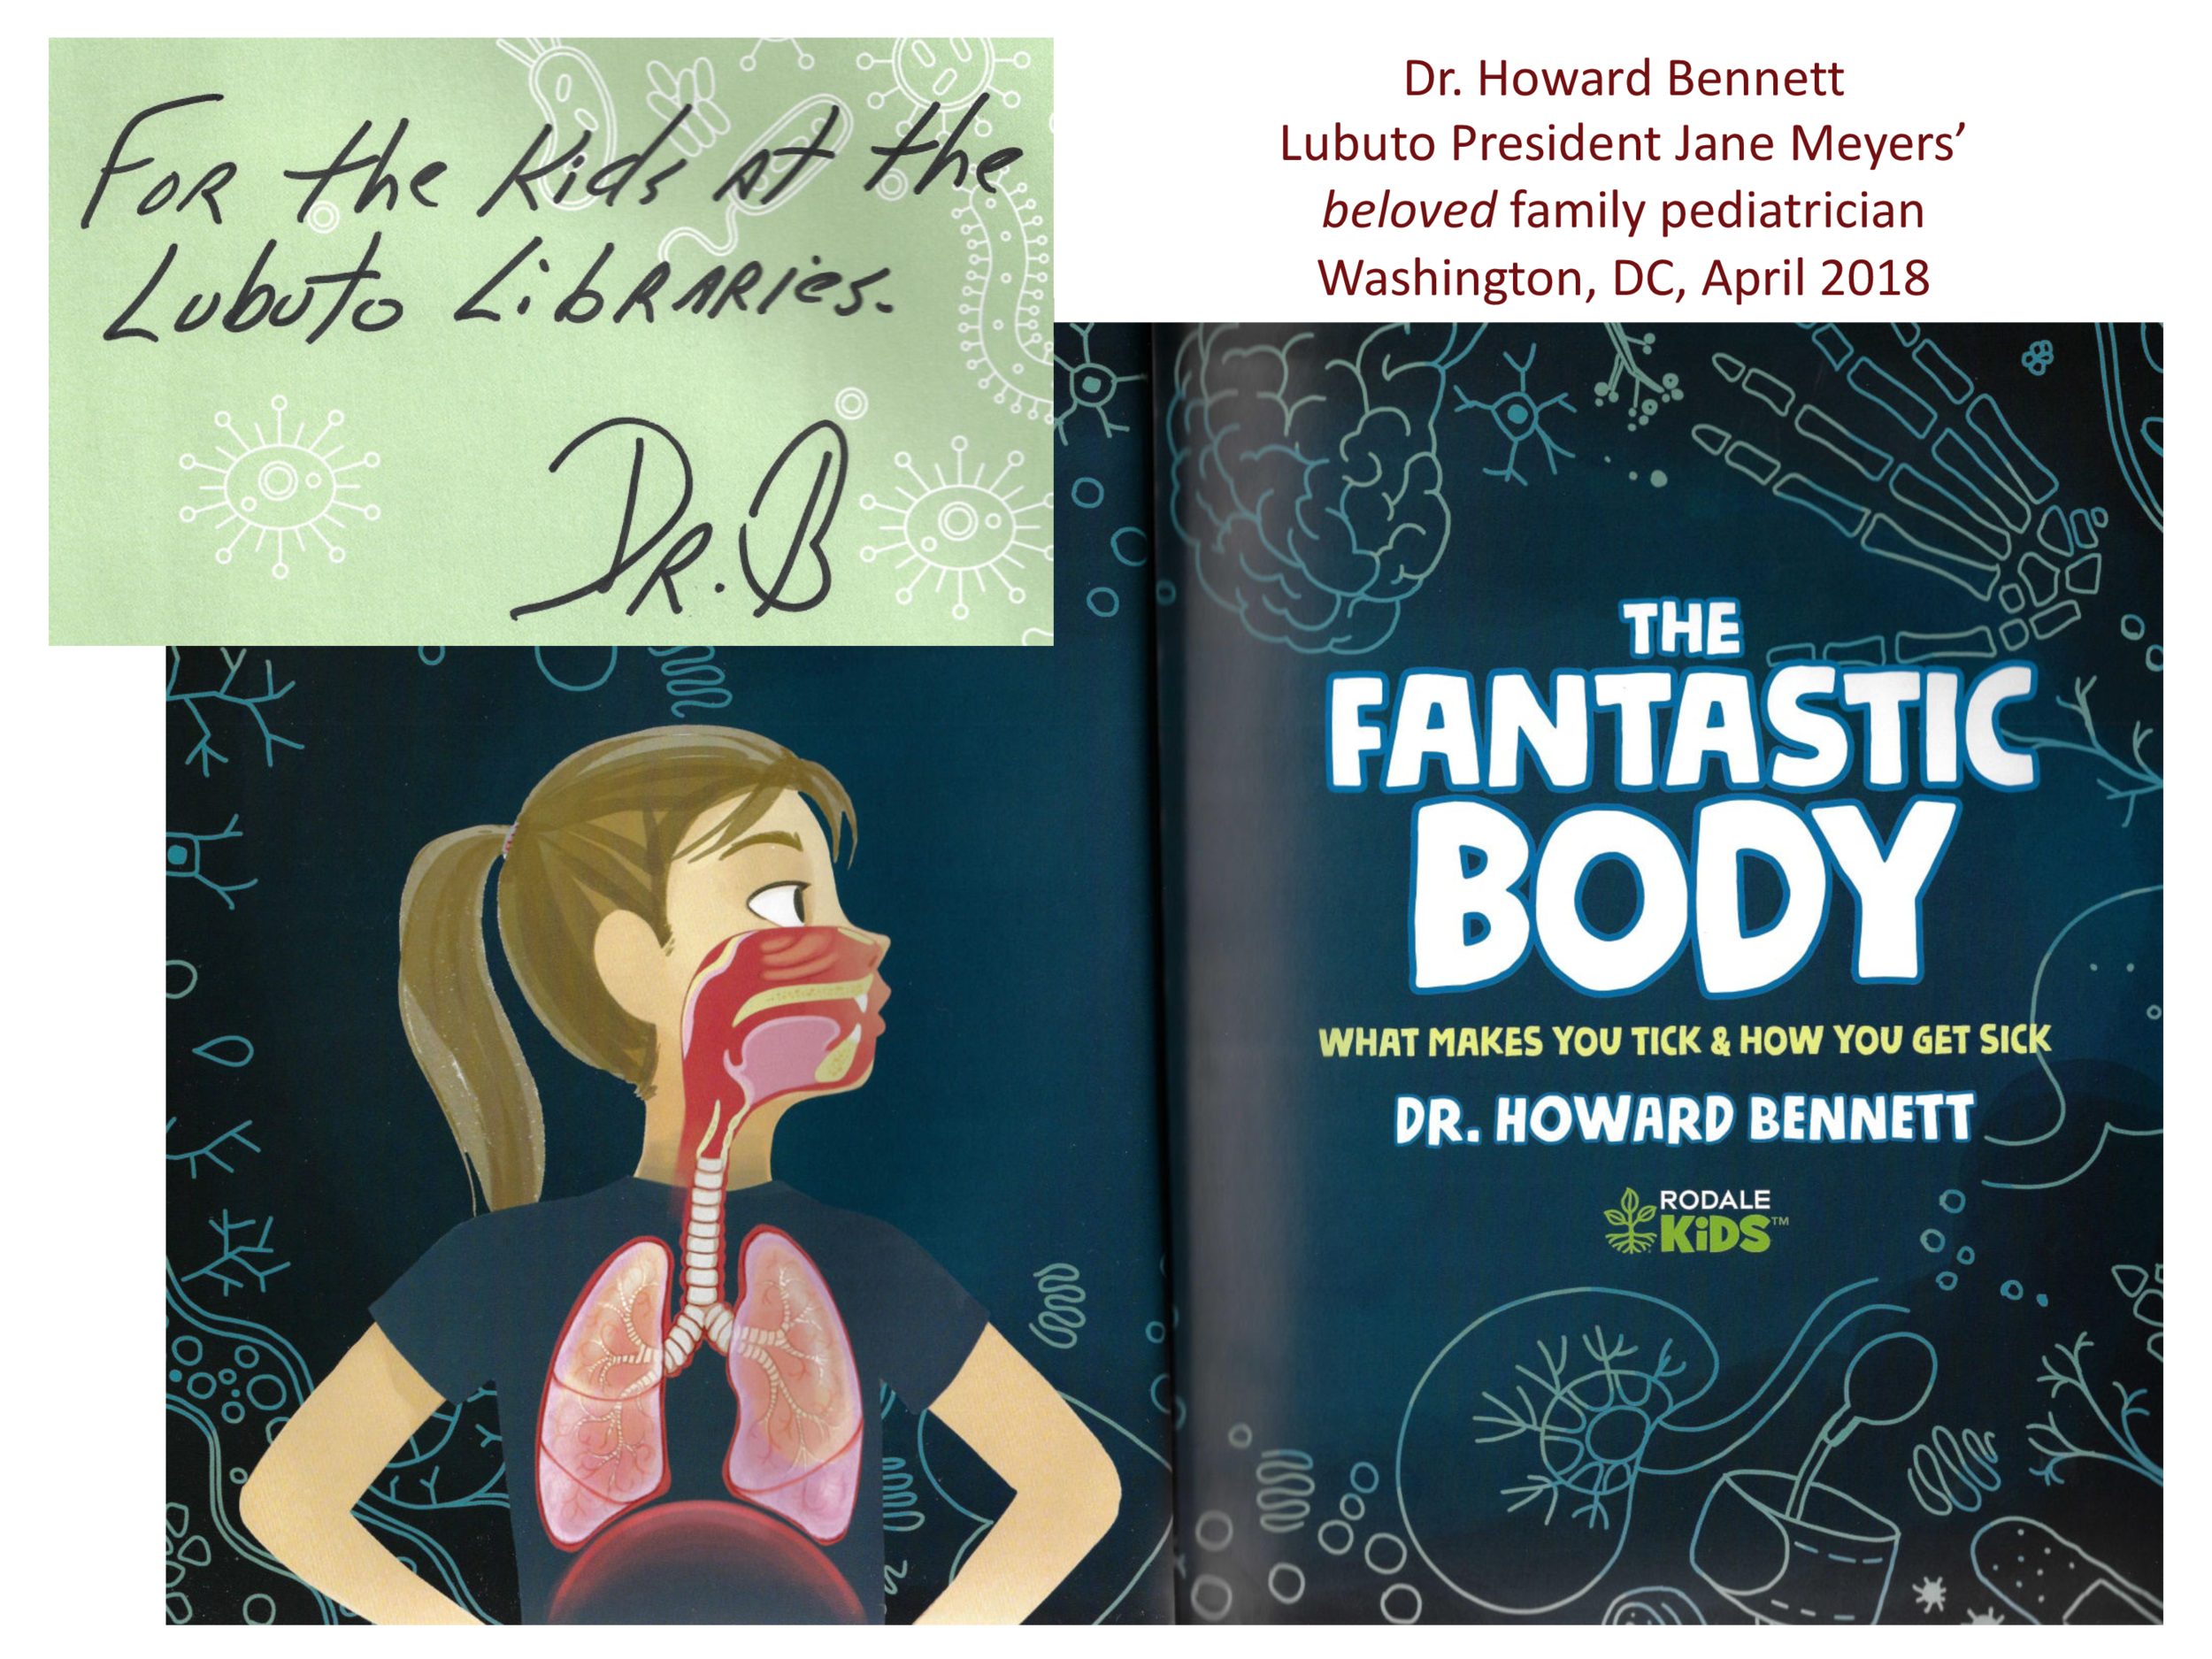 The Fantastic Body  by Dr. Howard Bennett